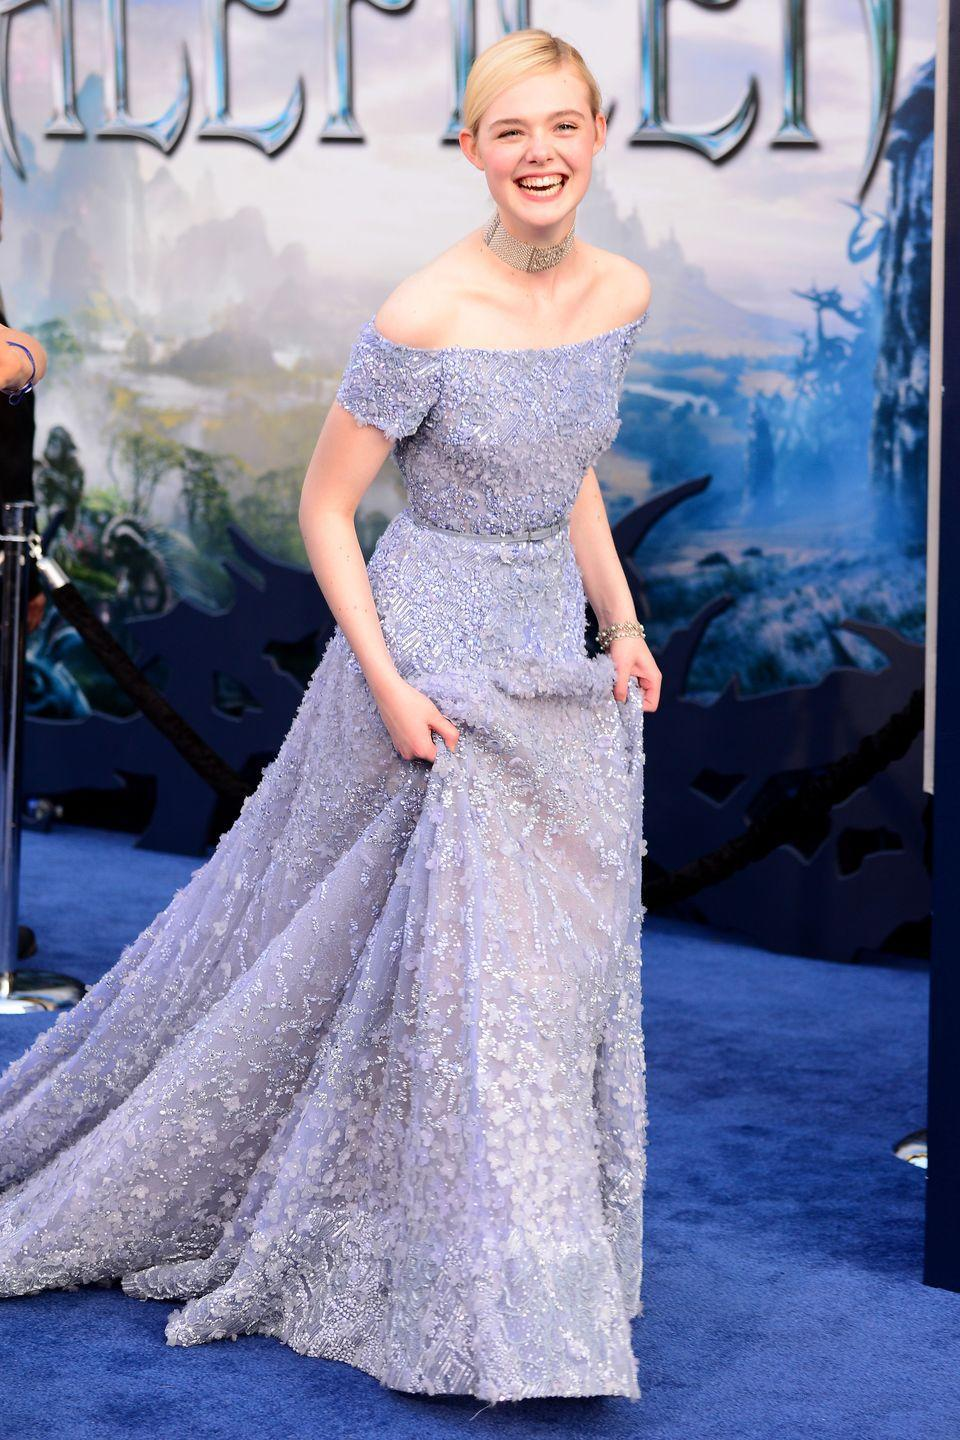 <p>While the costumes Elle Fanning wore as Aurora in 2014's <em>Maleficent</em> didn't have much in common with the gowns in the animated version, the actress gave a nod to the iconic blue dress by wearing an updated Elie Saab number at the movie's premiere.</p>